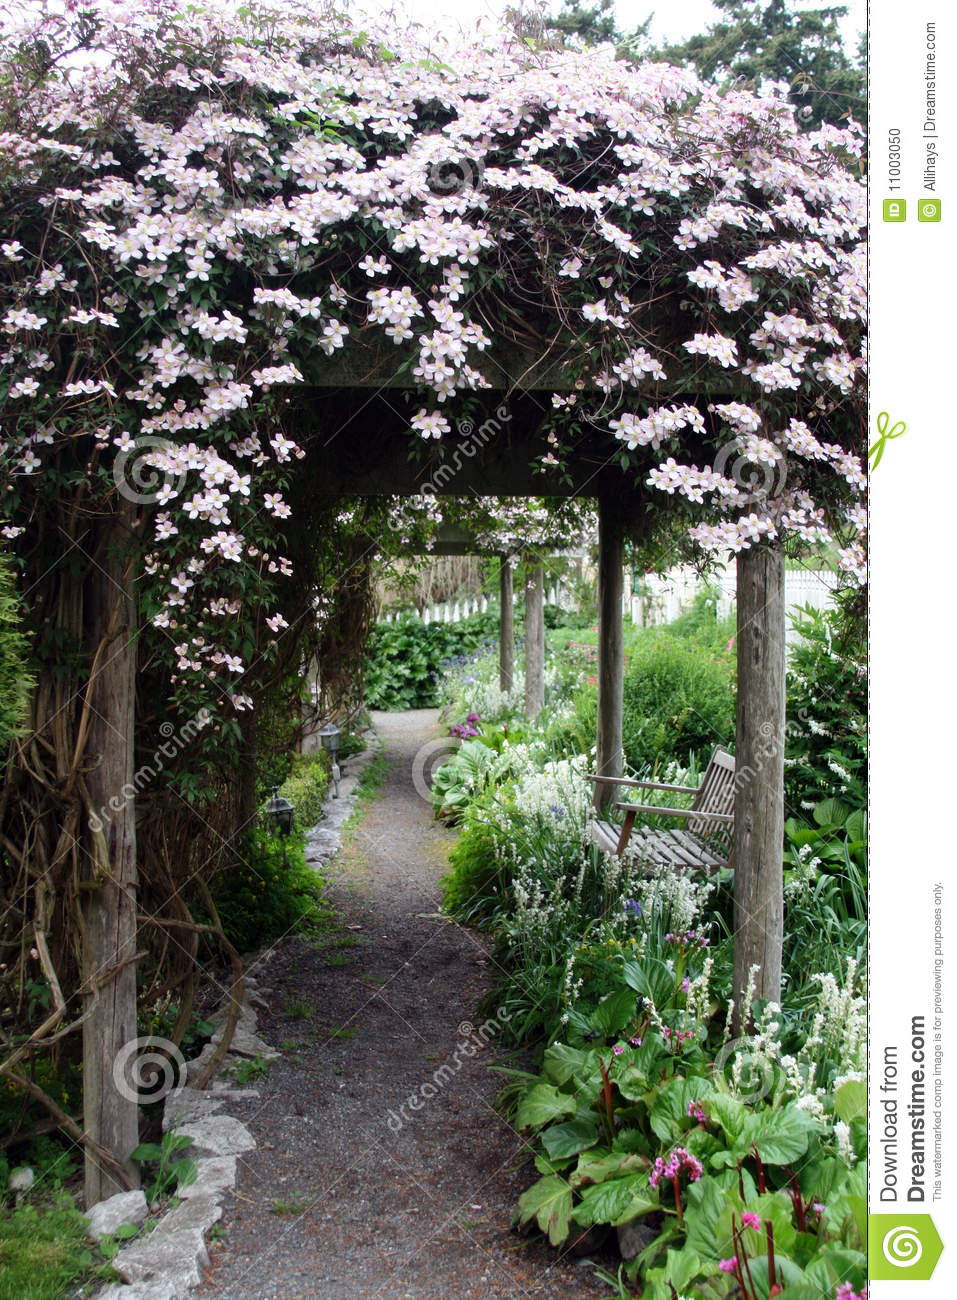 Clematis Covered Path Stock Photo - Image: 11003050